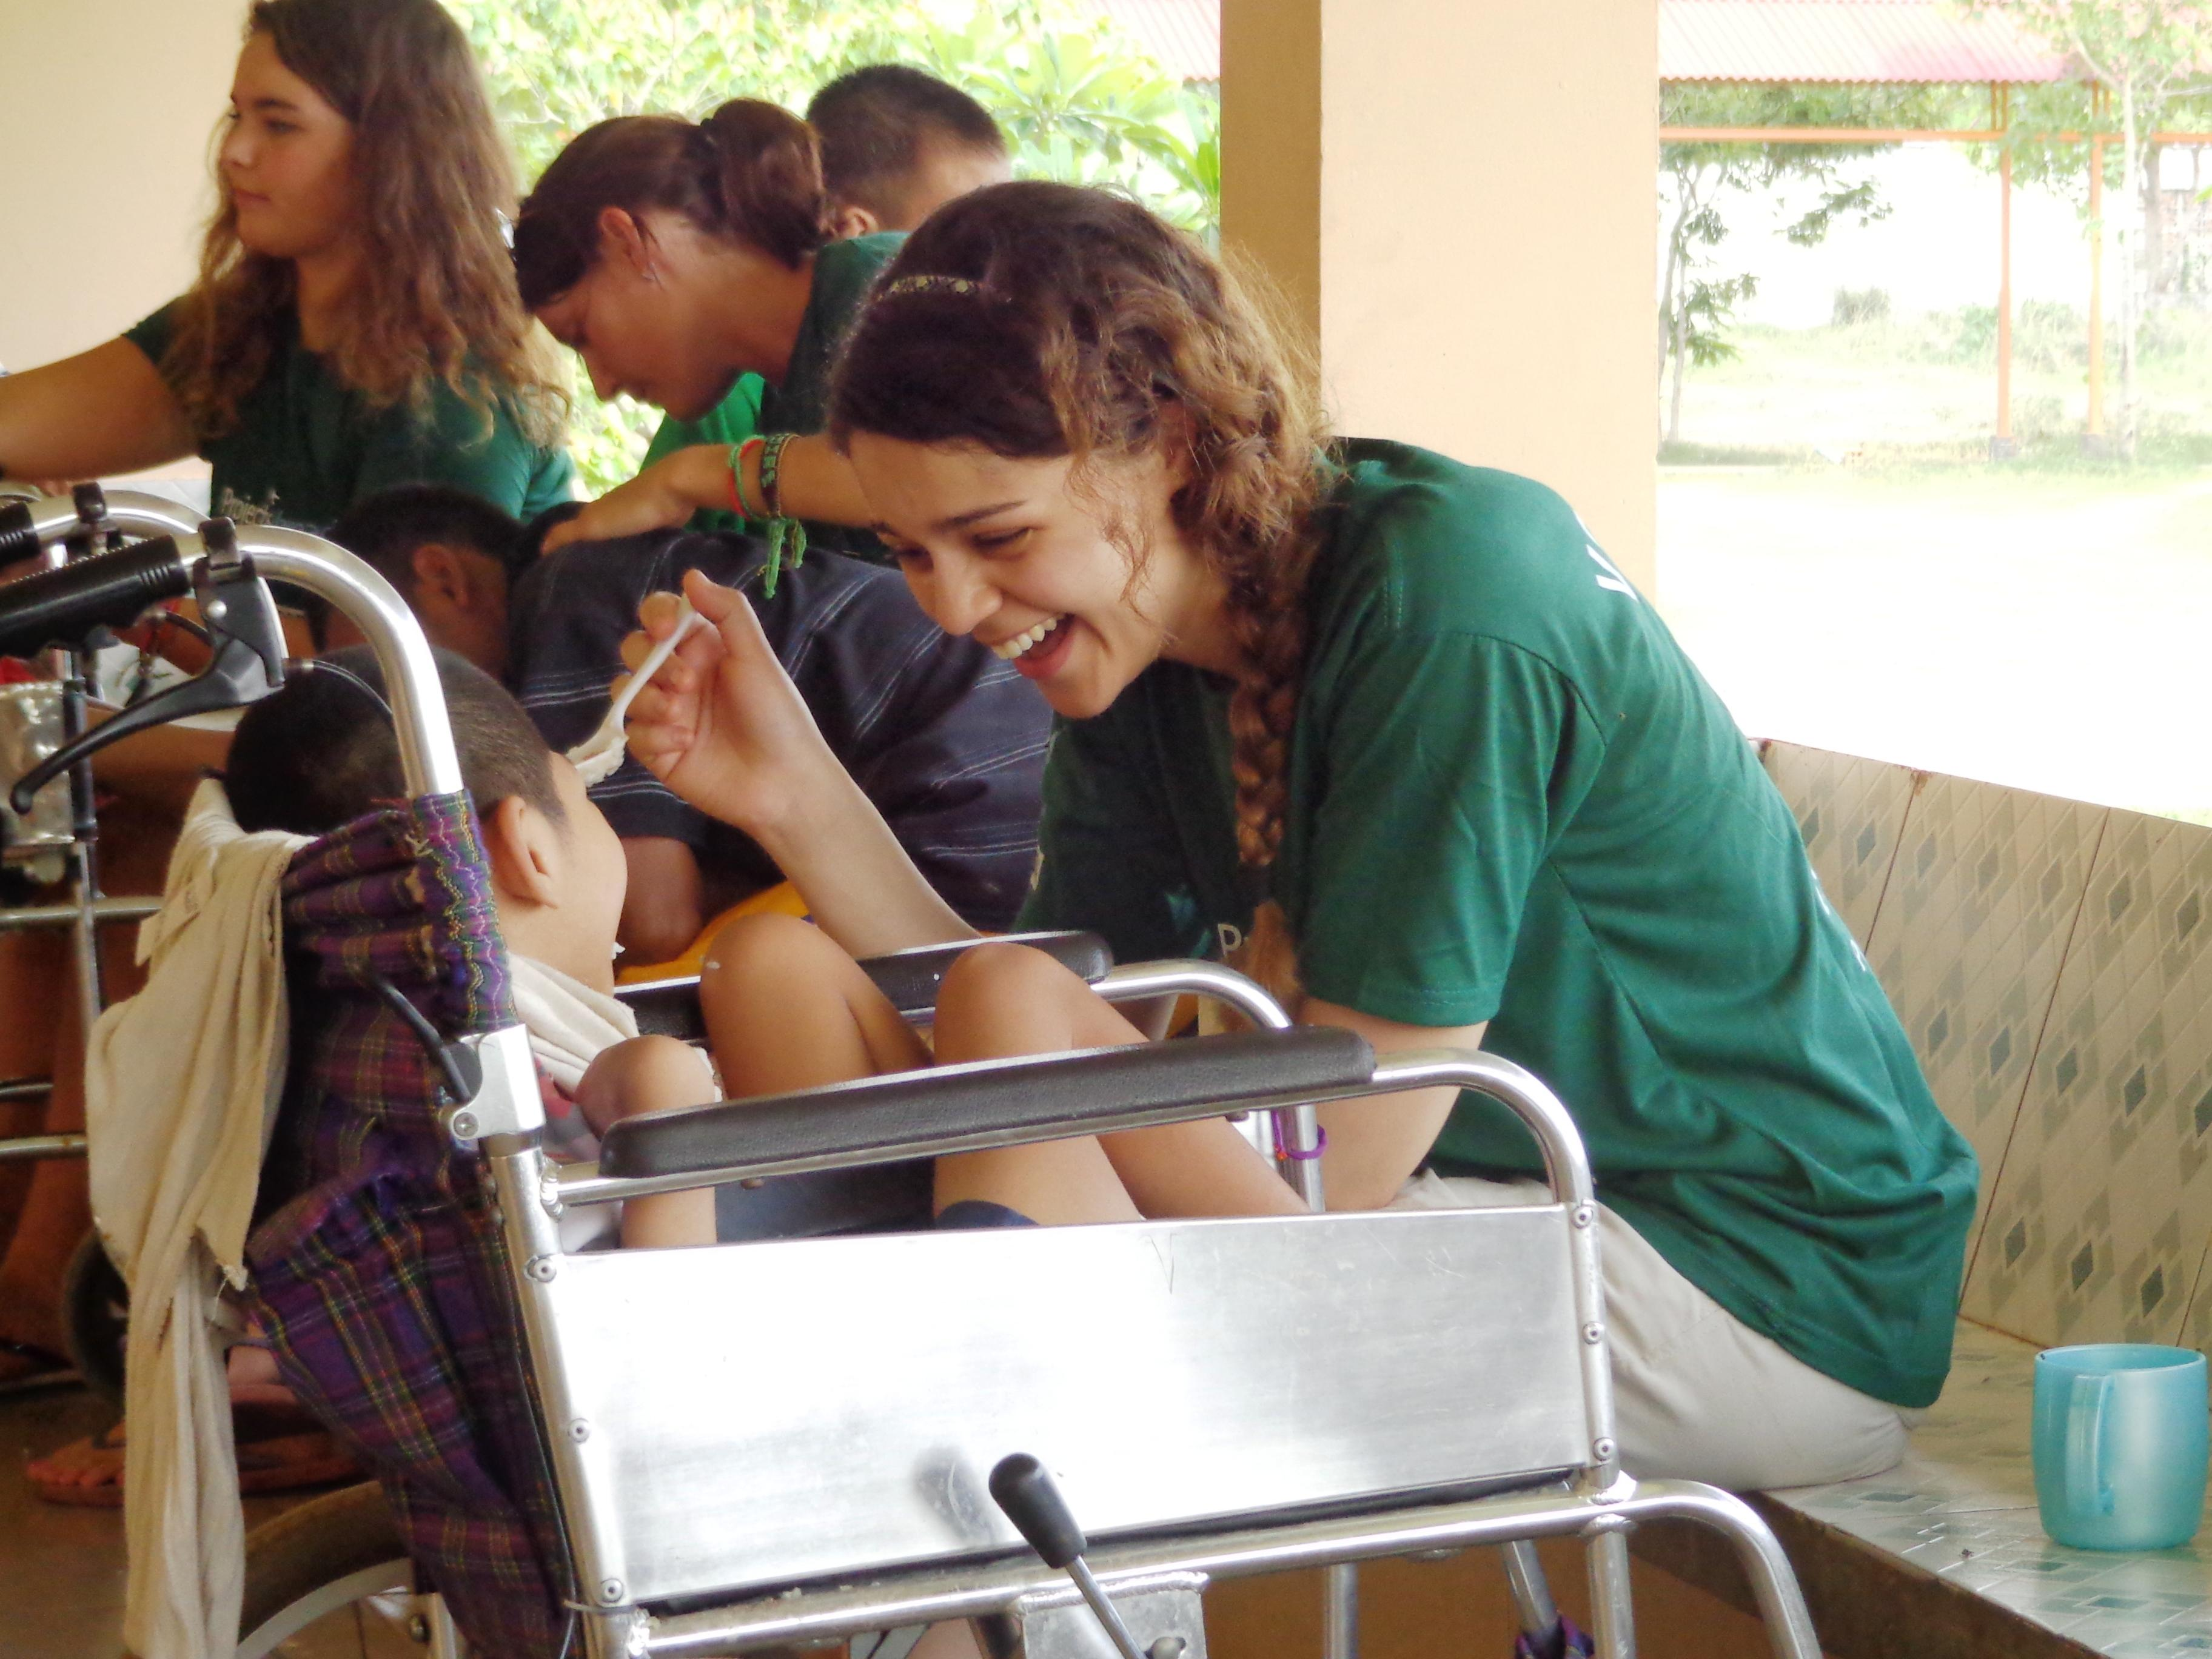 A female Projects Abroad intern is seen helping a child eat as part of her occupational therapy internship in Cambodia.